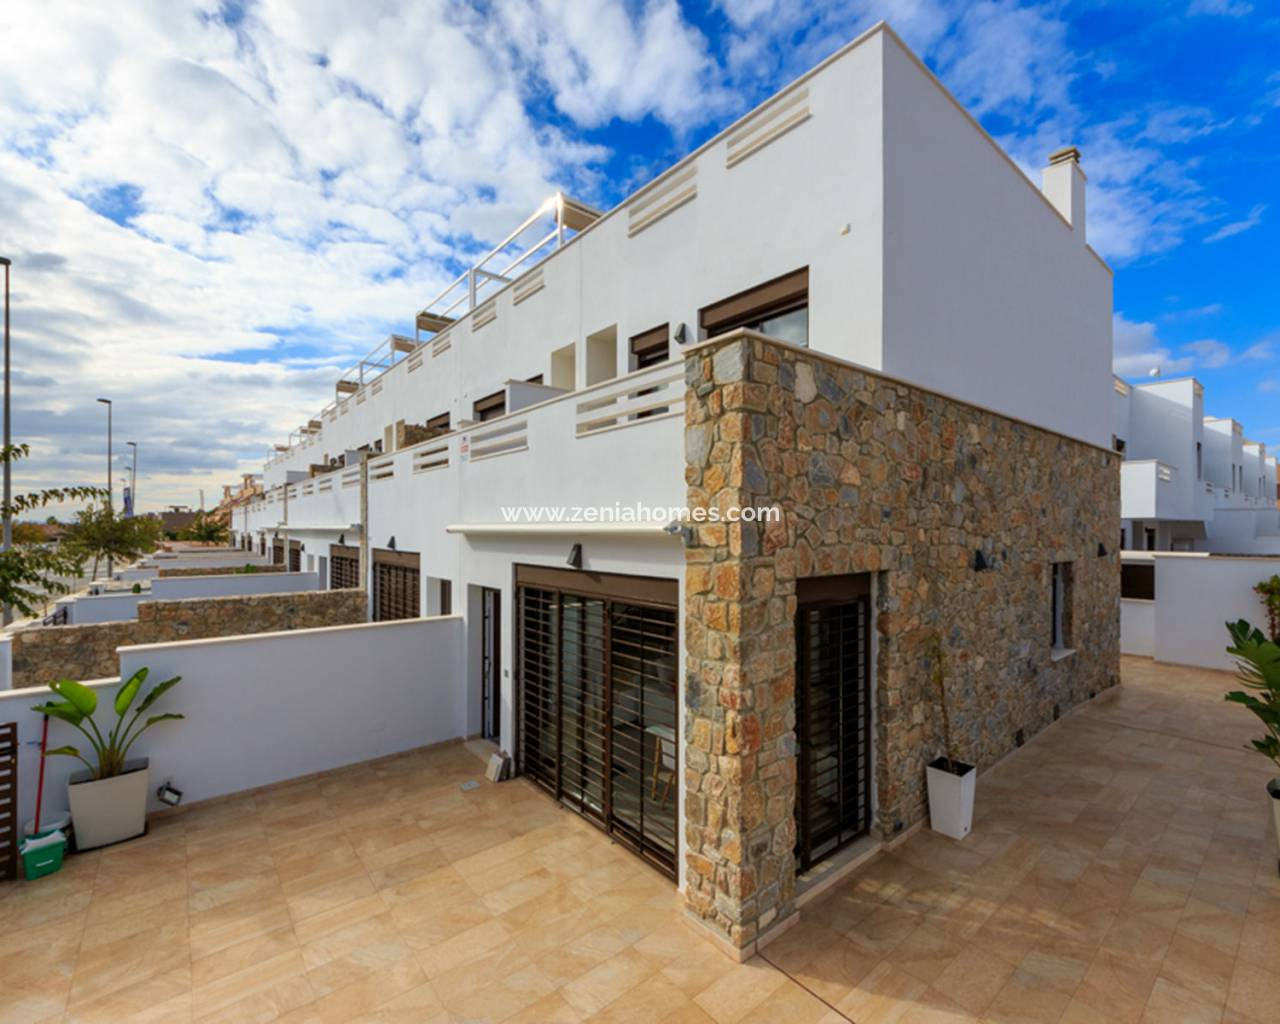 Radhus - New Build - Torrevieja - Torrevieja